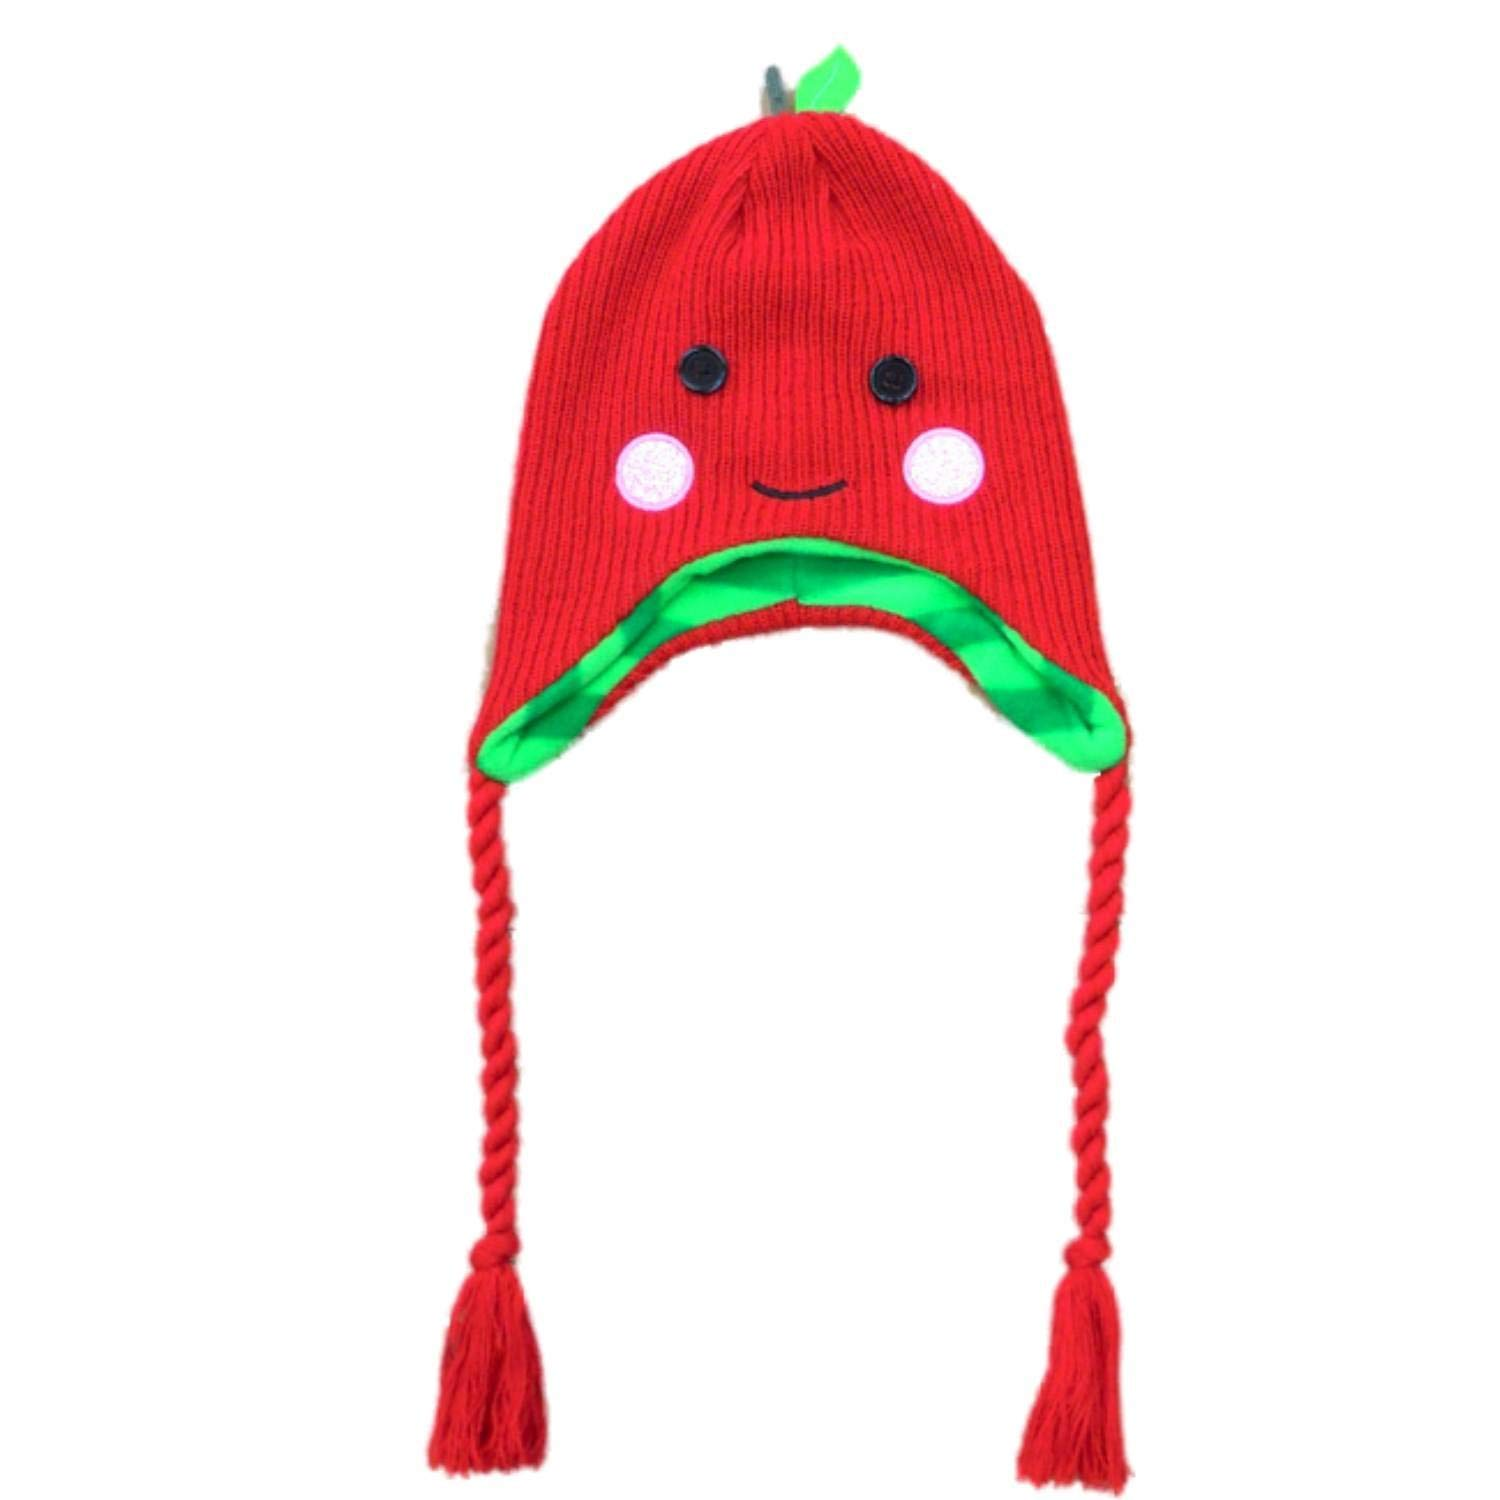 4da52f276ab Get Quotations · Womens Red Knit Strawberry Peruvian Style Trapper Hat  Fleece Lined